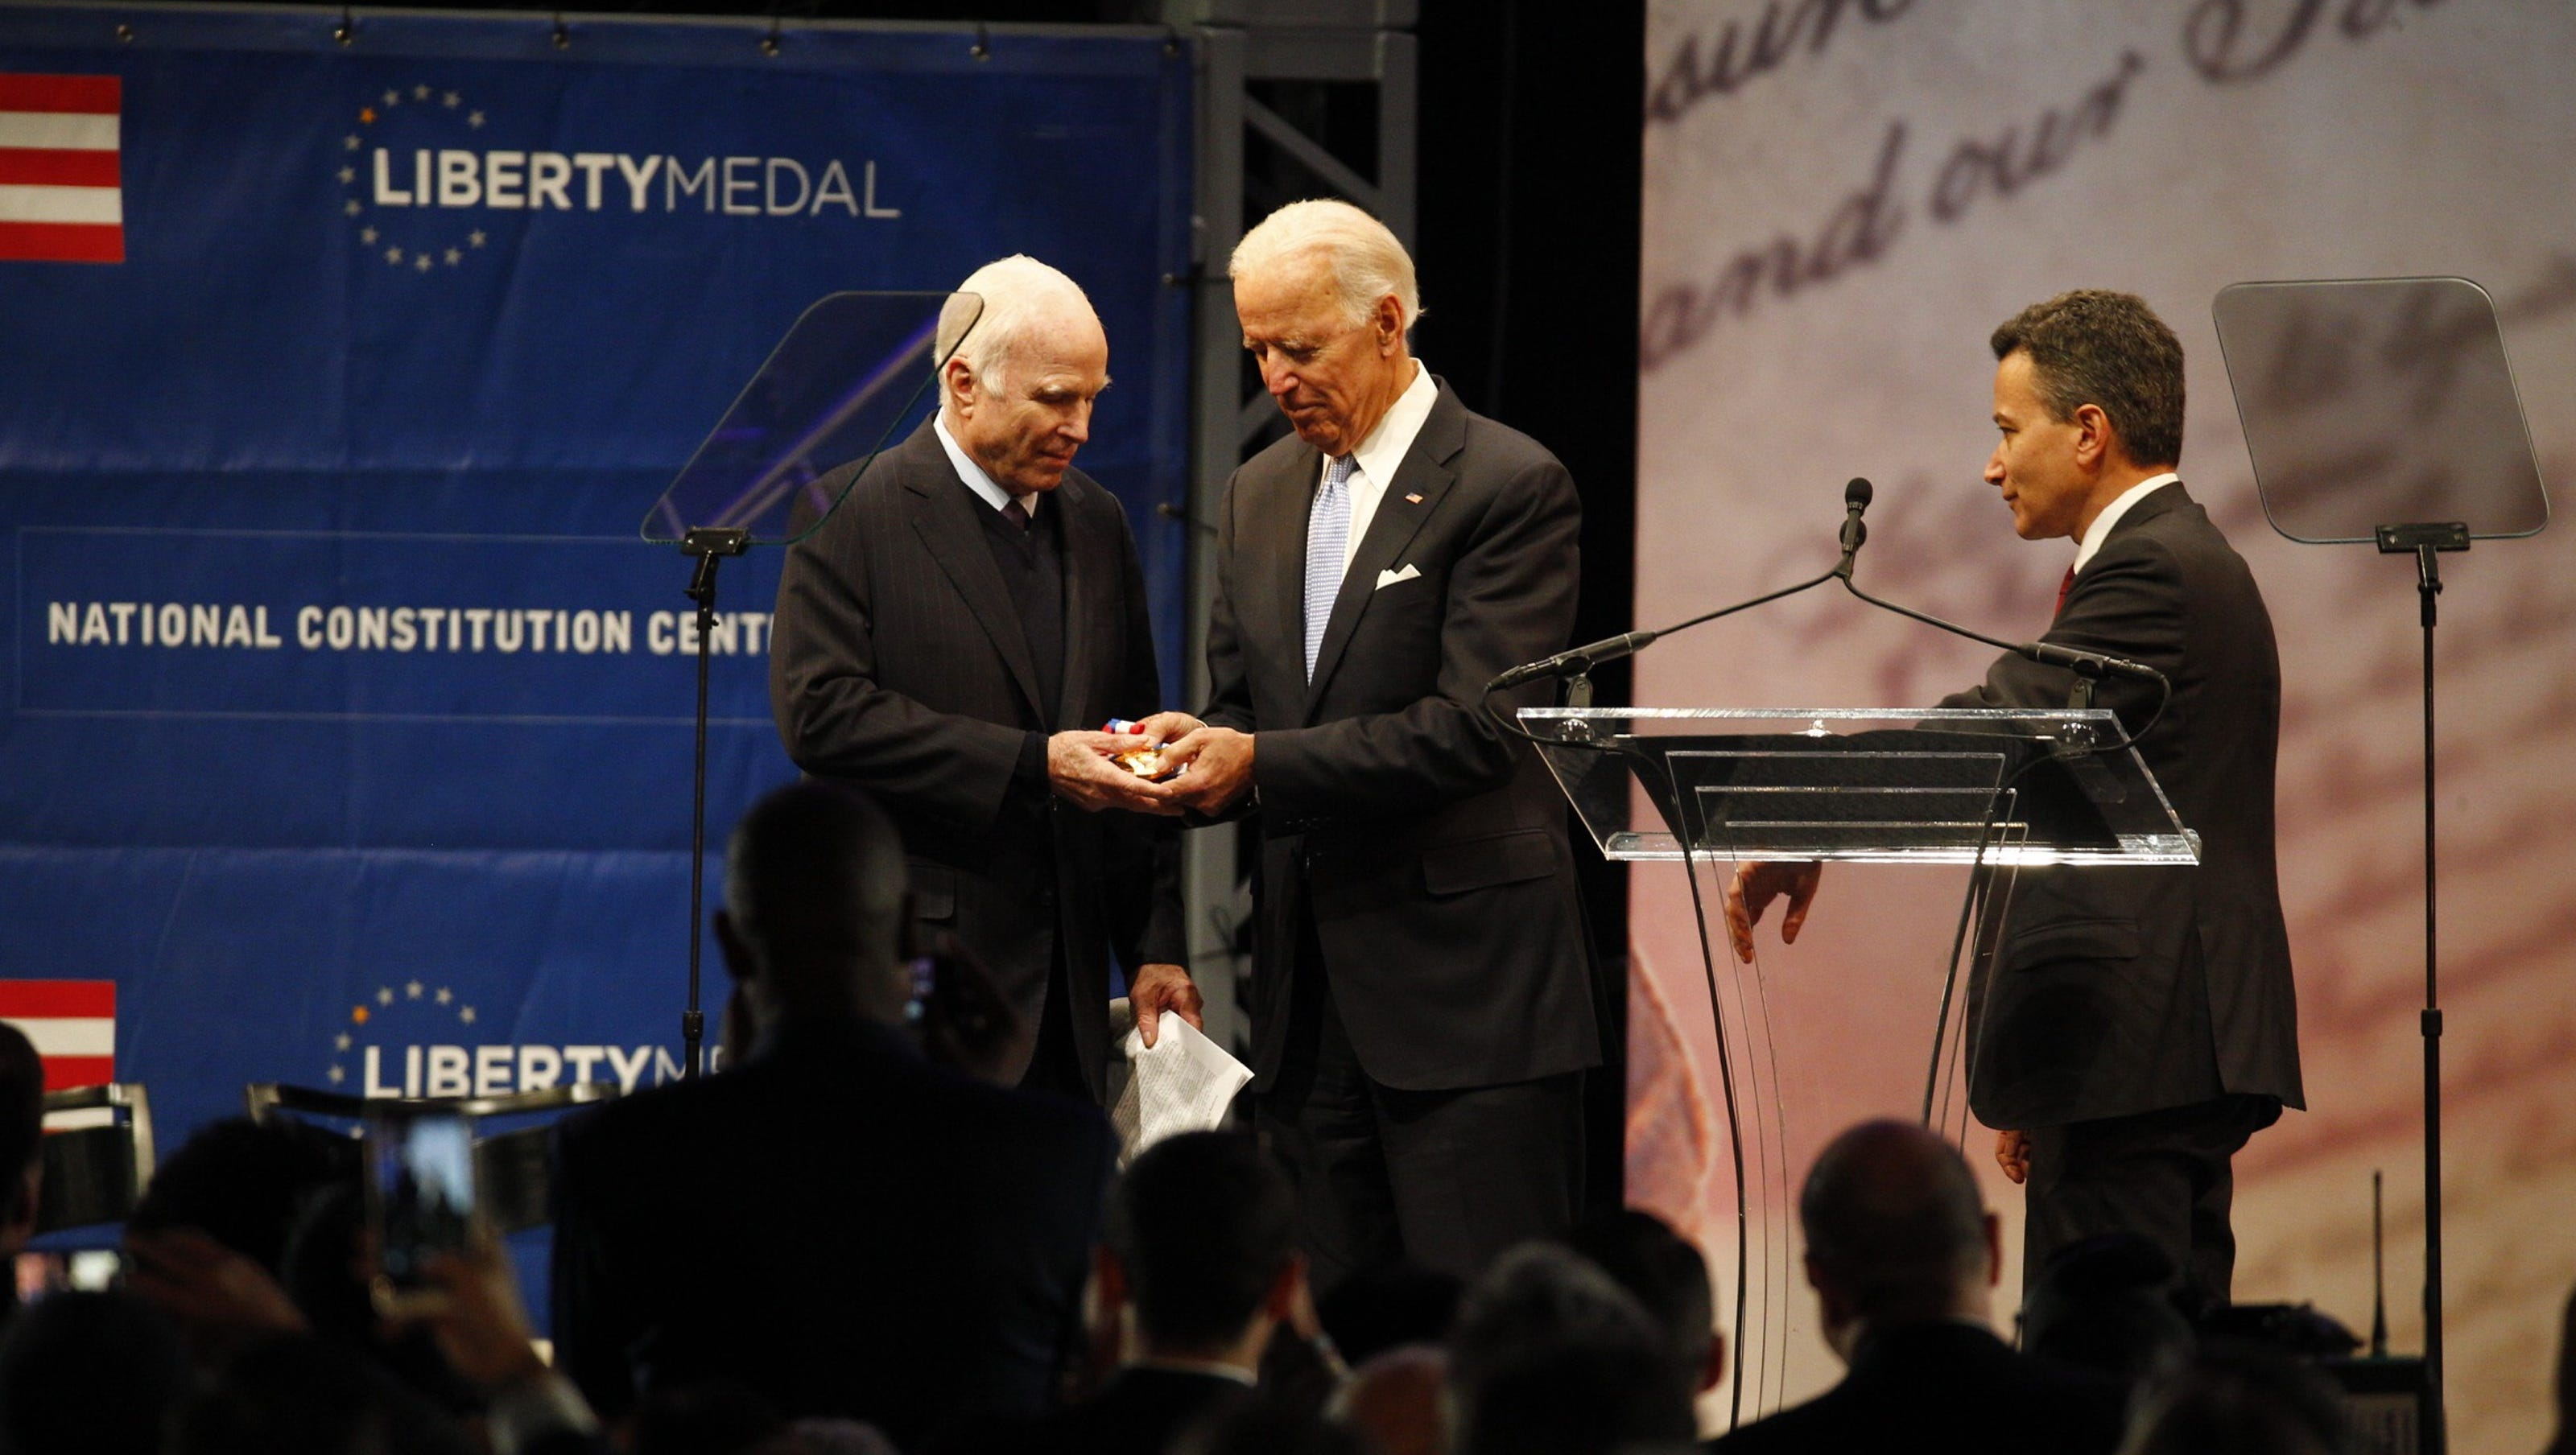 Image result for McCain being awarded liberty medal